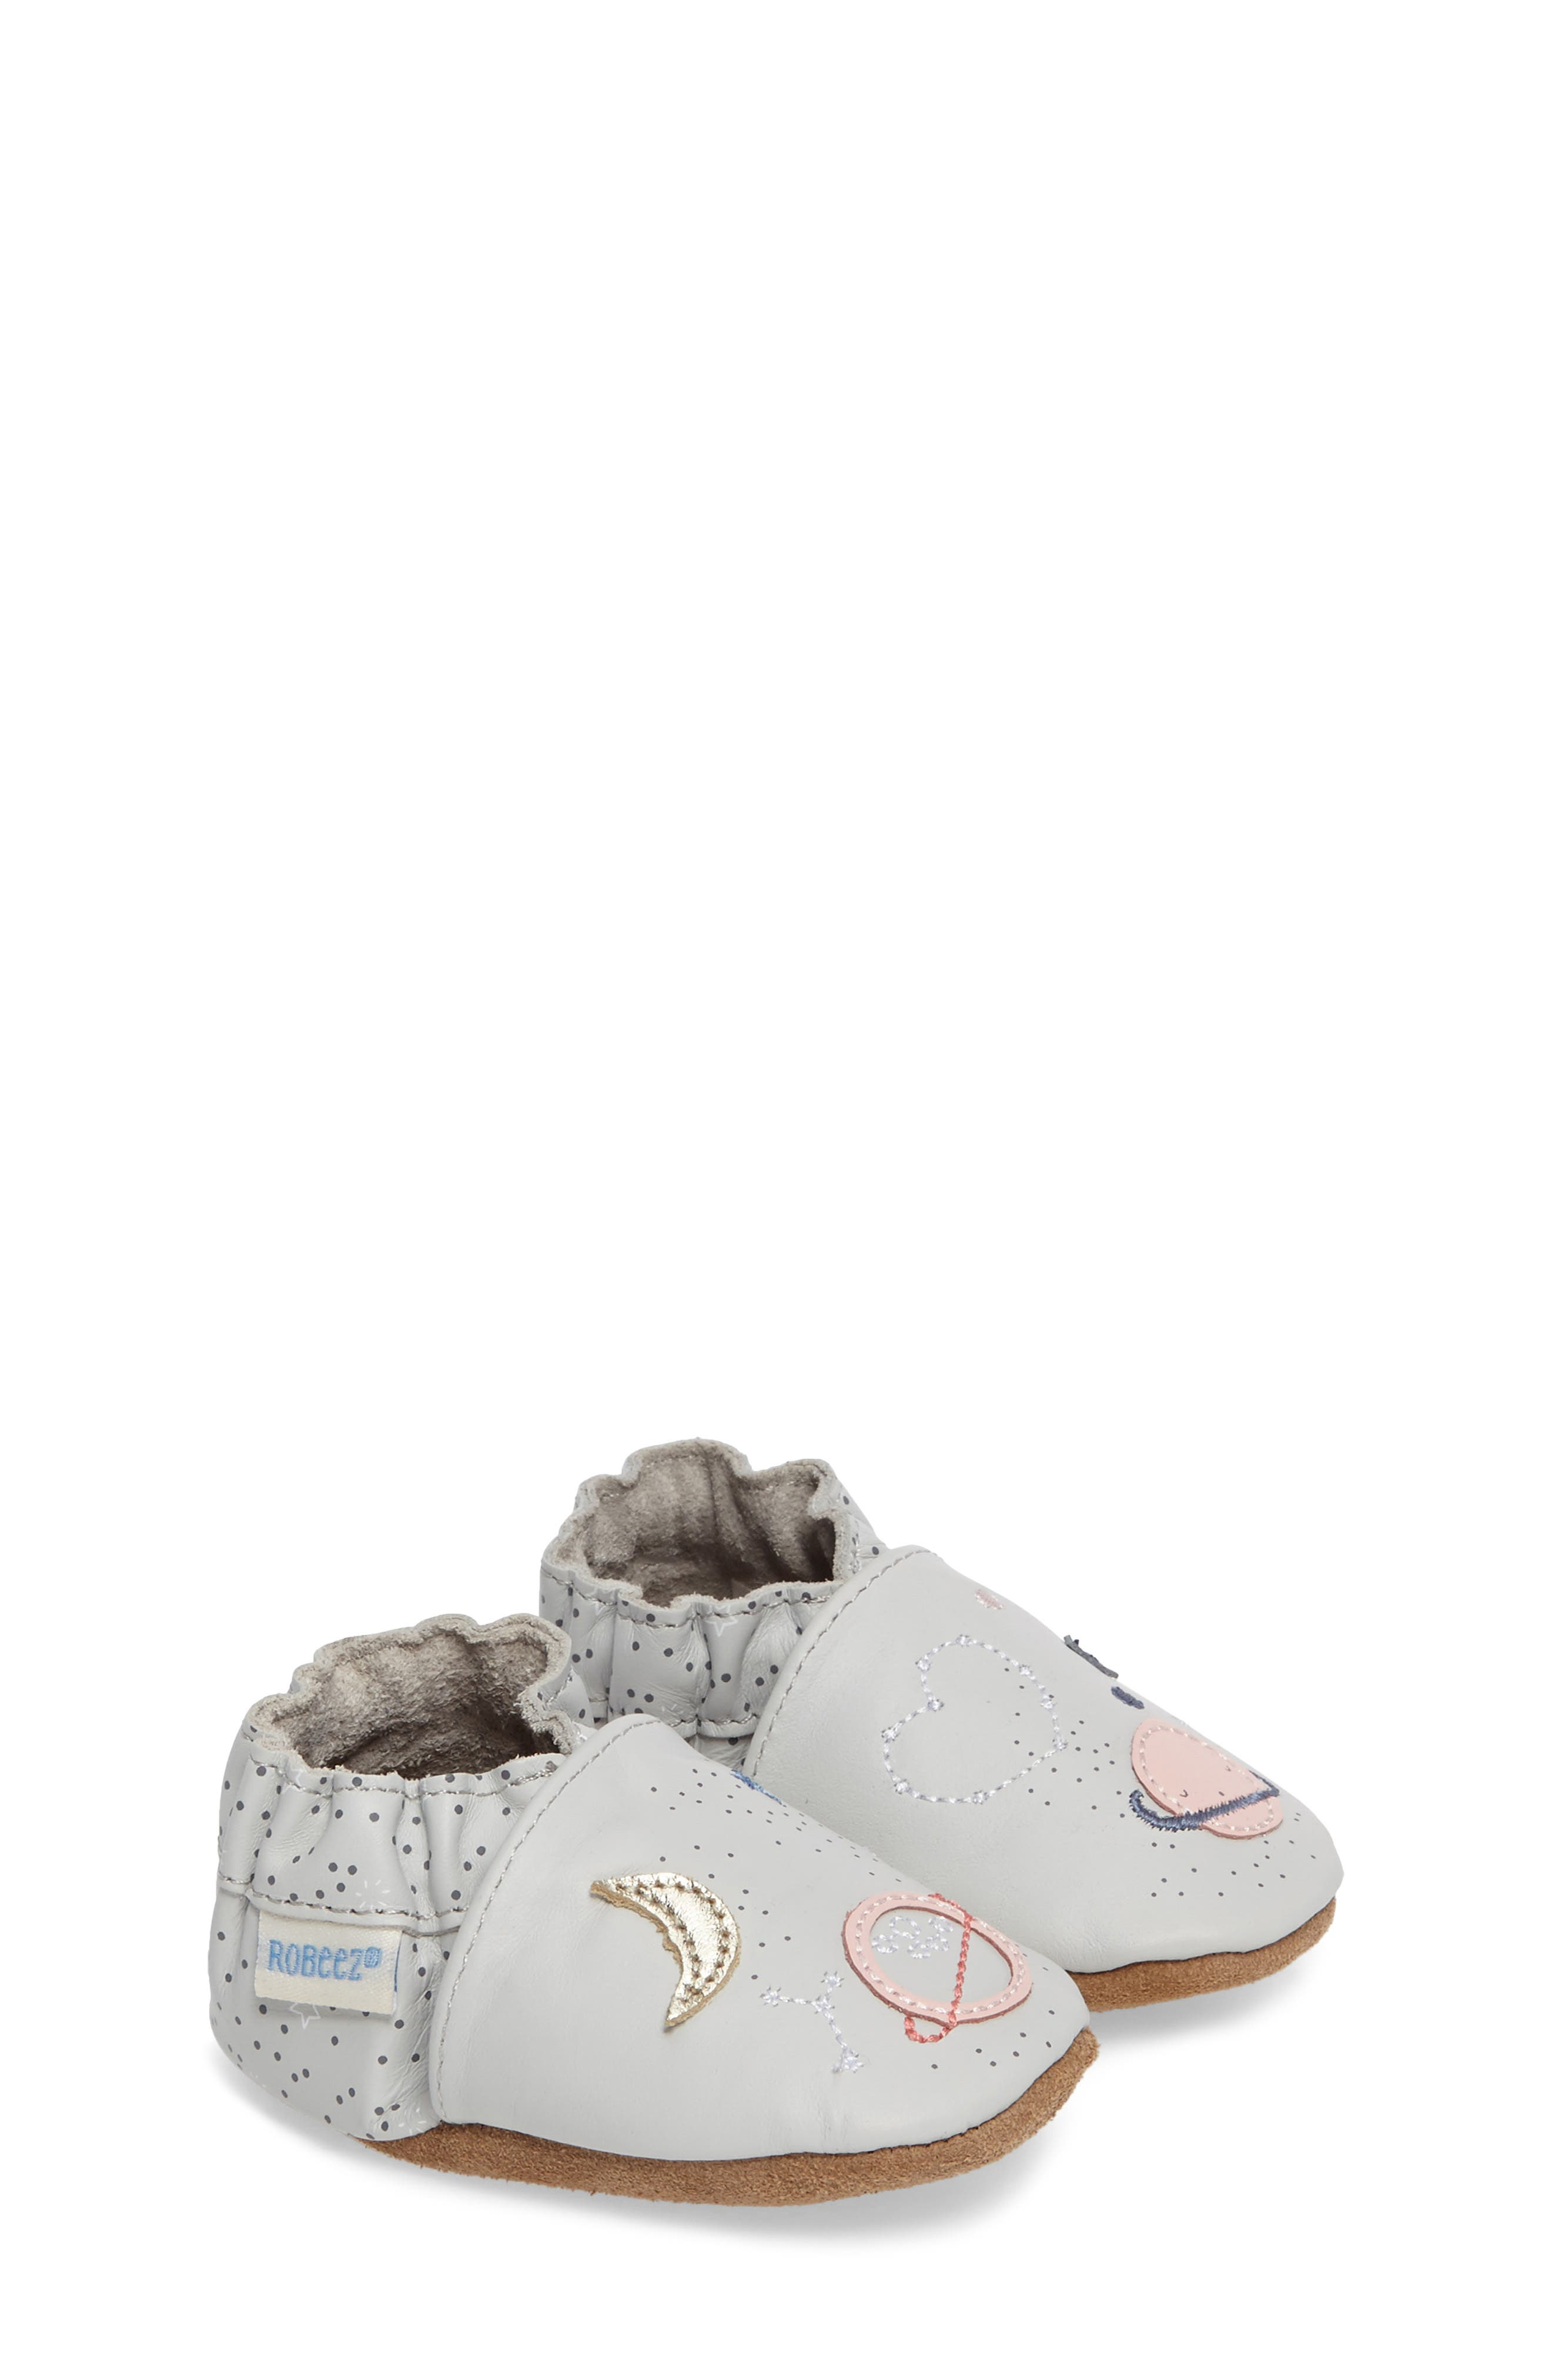 Over the Moon Crib Shoe,                         Main,                         color, 020